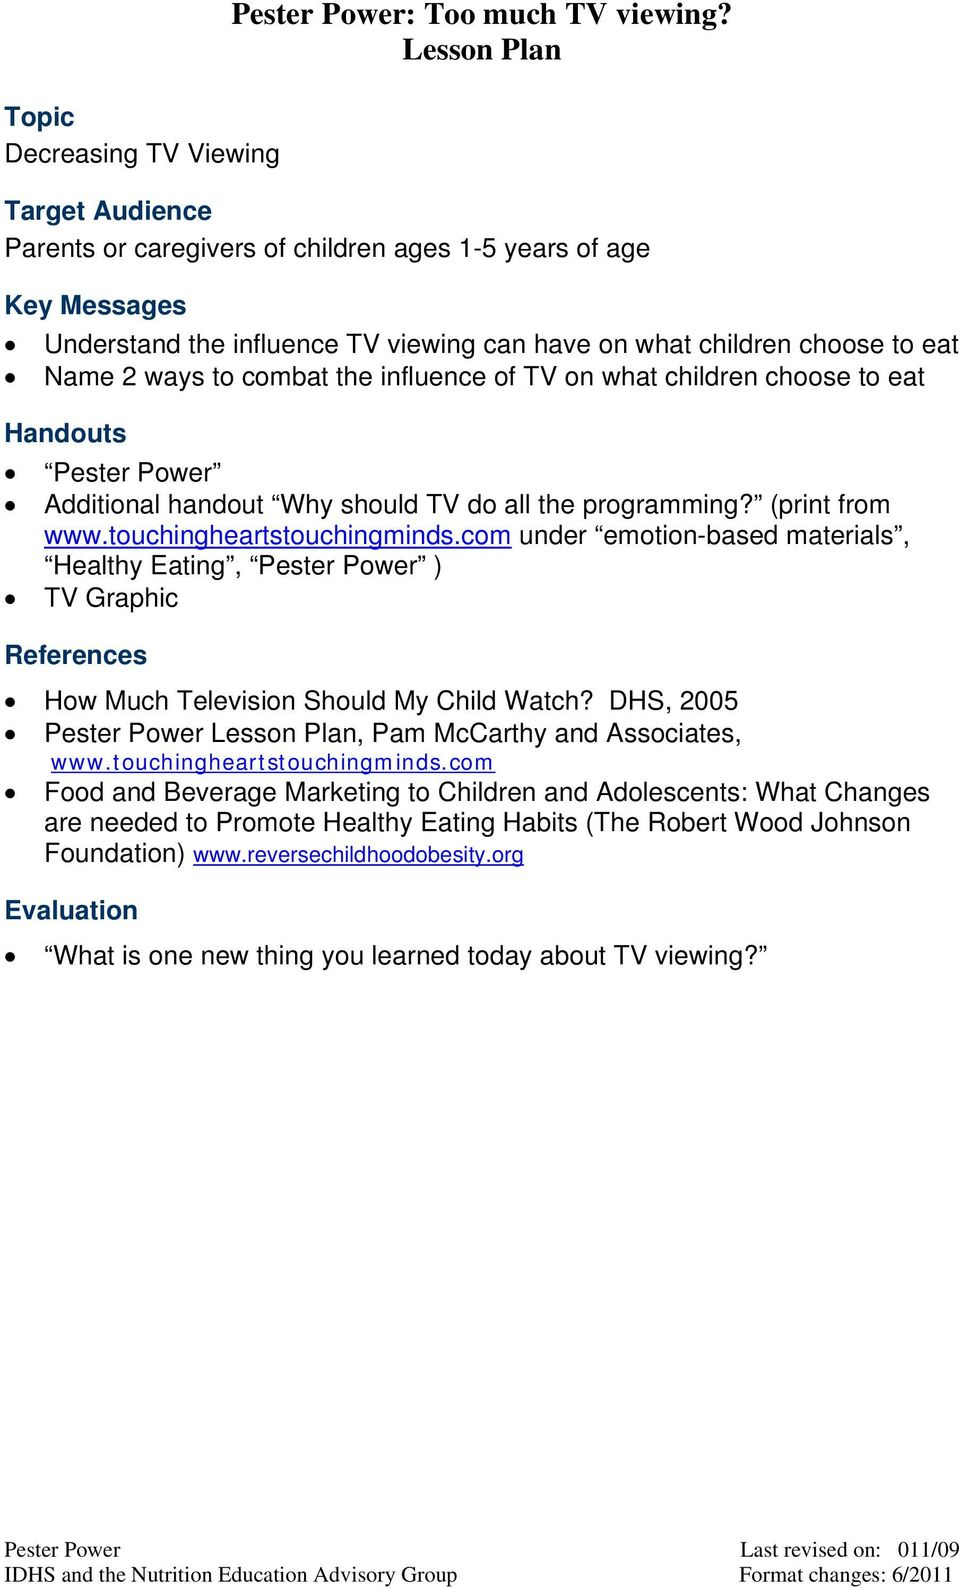 influence of TV on what children choose to eat Handouts Pester Power Additional handout Why should TV do all the programming? (print from www.touchingheartstouchingminds.